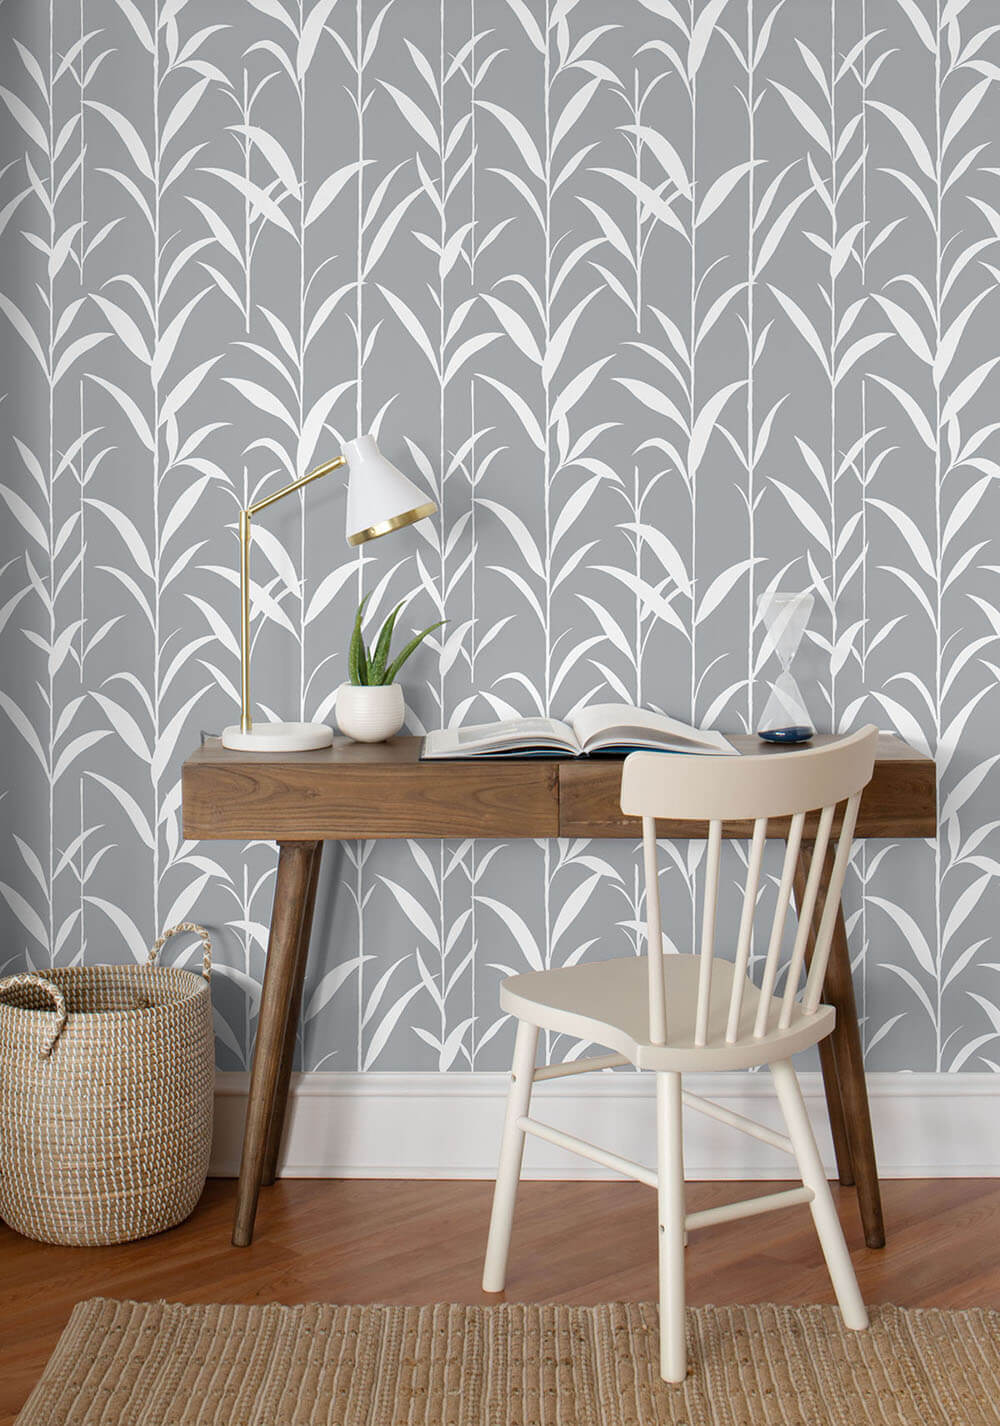 Nextwall Bamboo Leaf Peel And Stick Removable Wallpaper Say Decor Llc